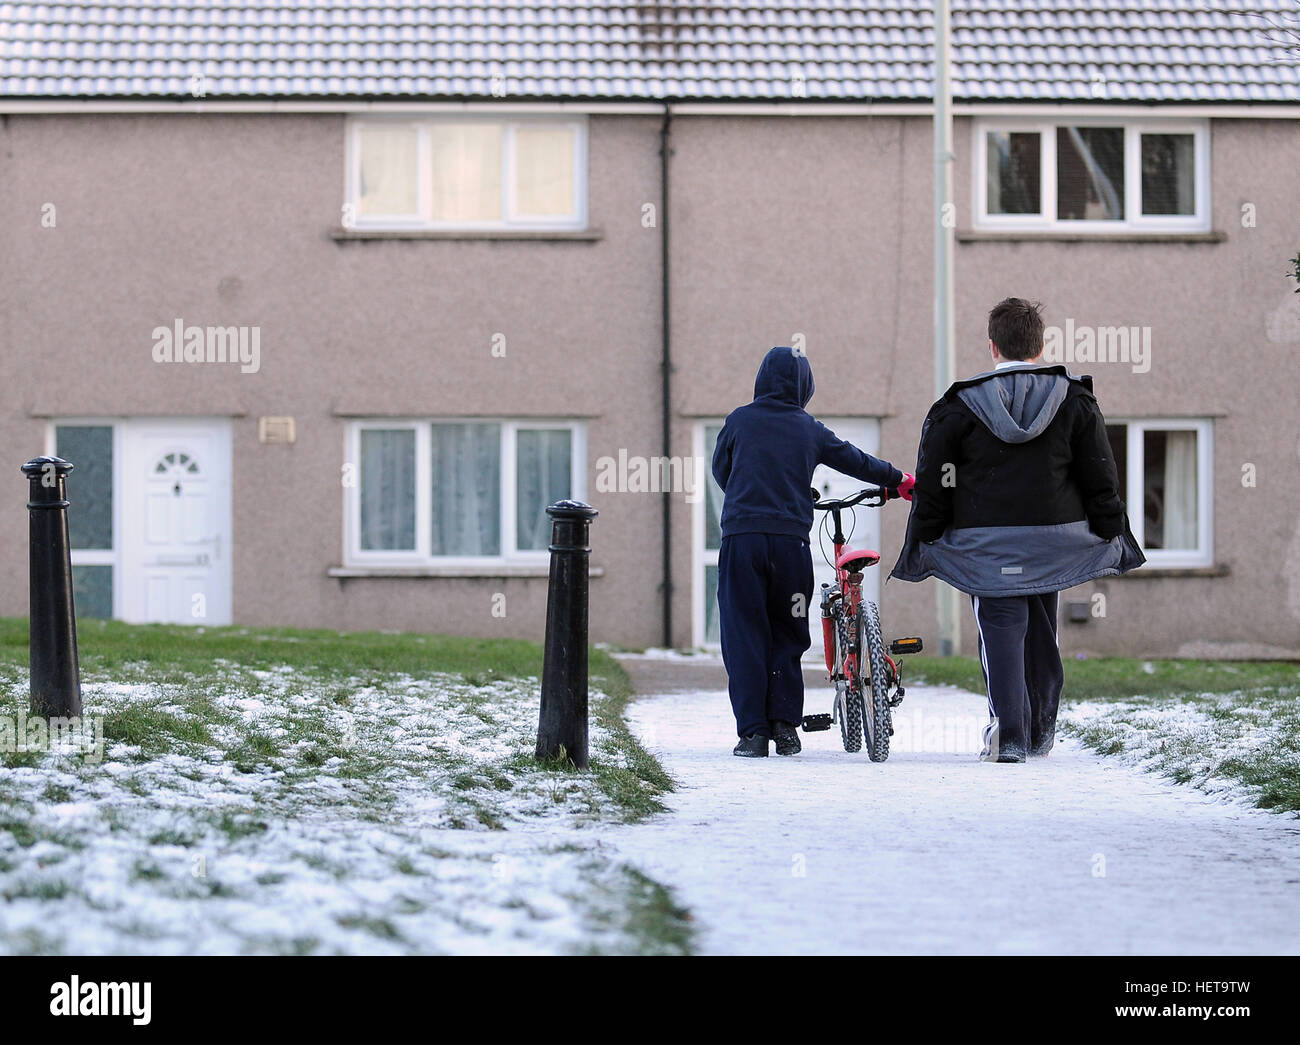 Two young boys walk on a snow covered path on the Gurnos housing Council estate in Merthyr Tydfil, South Wales, Stock Photo